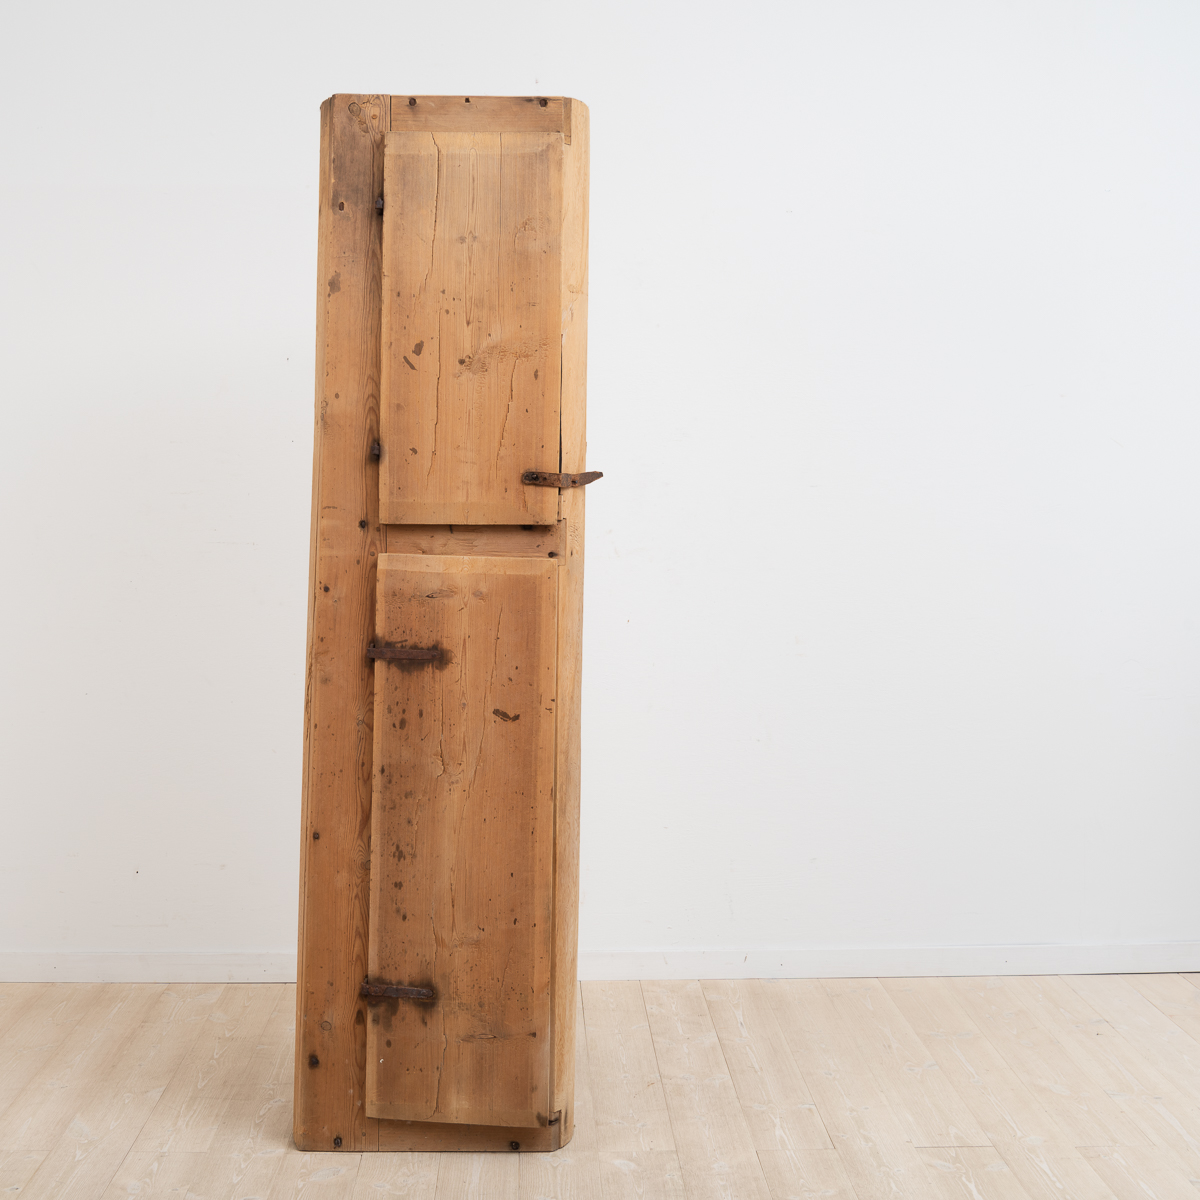 Unusual and primitive cabinet from Härjedalen. Manufactured from a hollowed log.